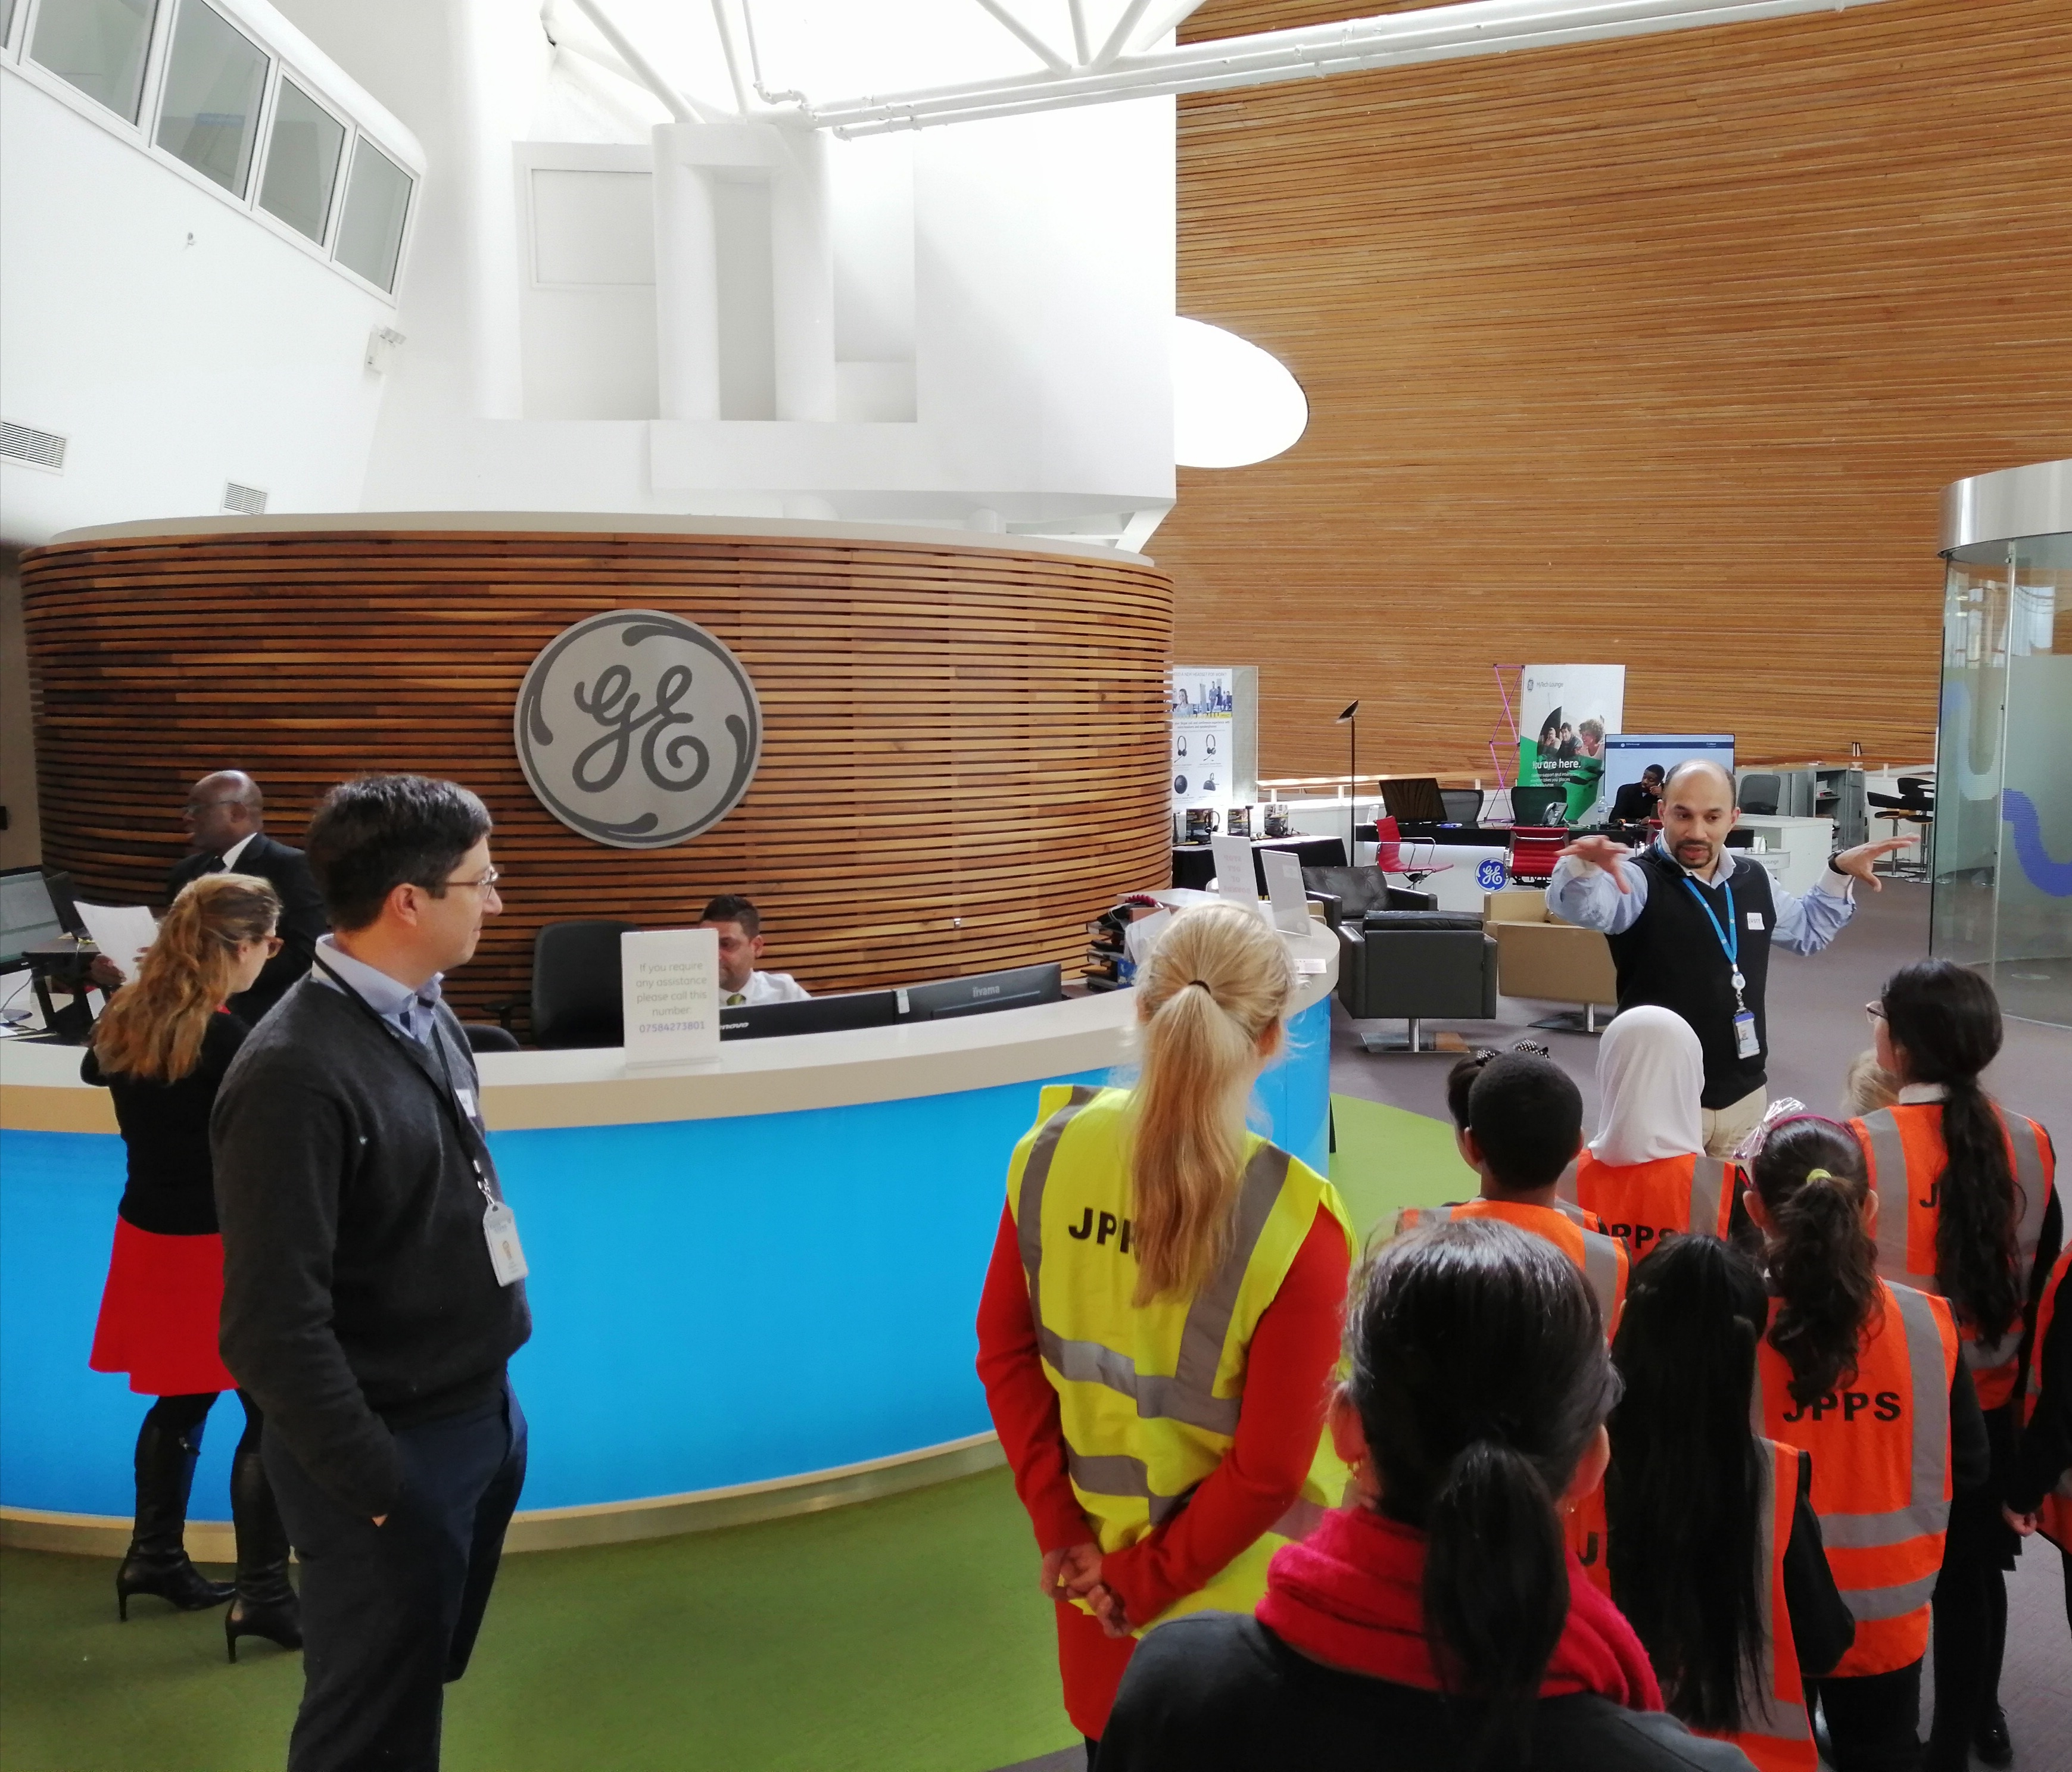 Listening skills in action as learners are given a tour of the GE offices.